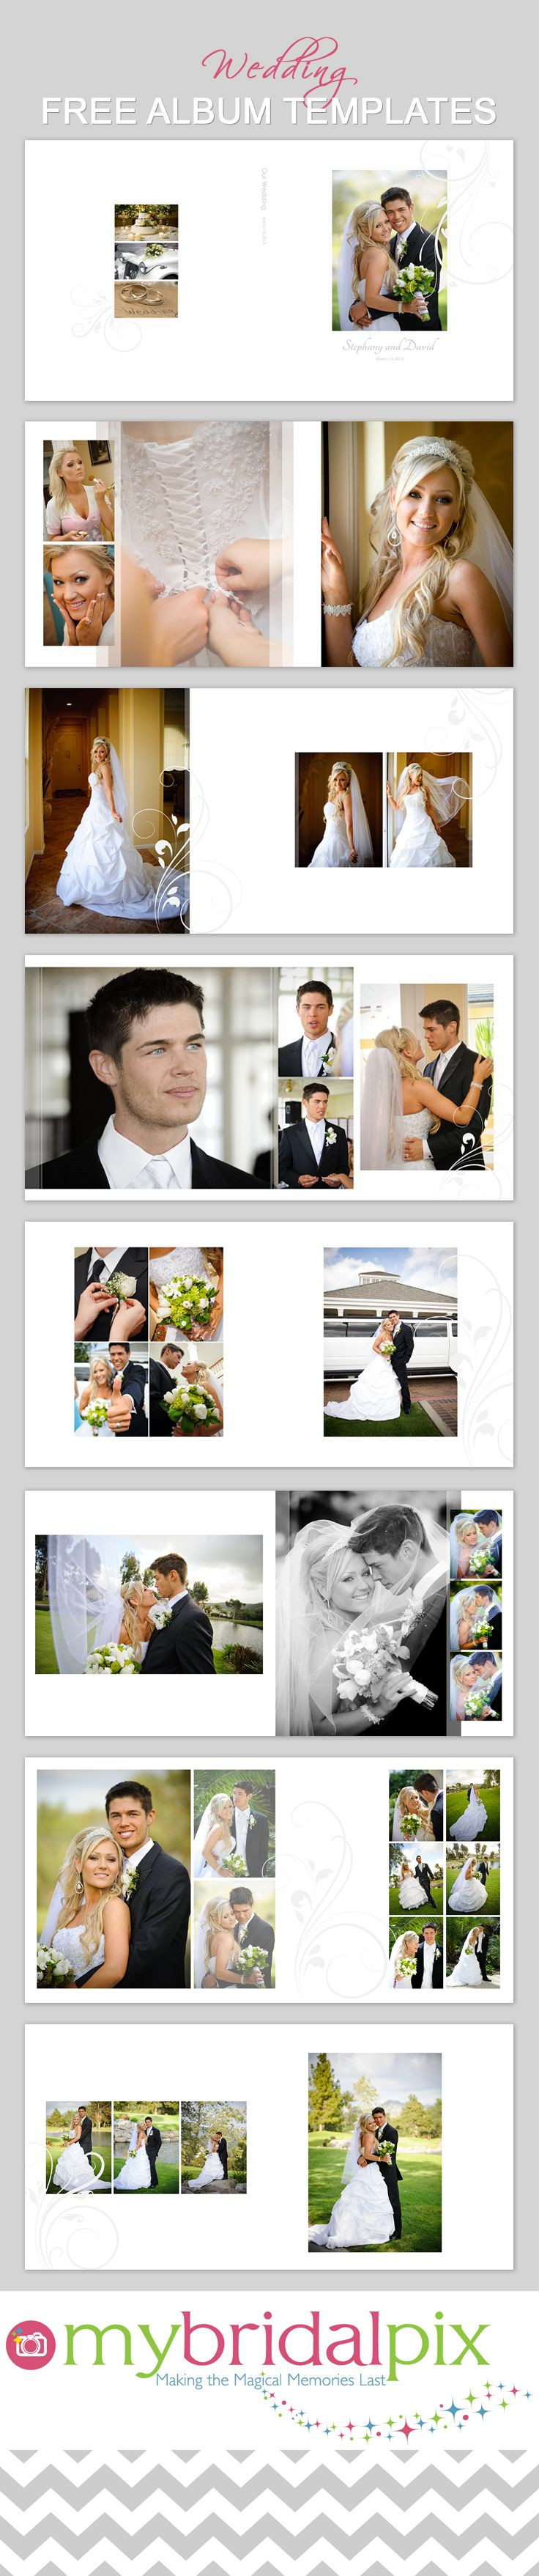 diy wedding albums simply drag and drop your images into ready made